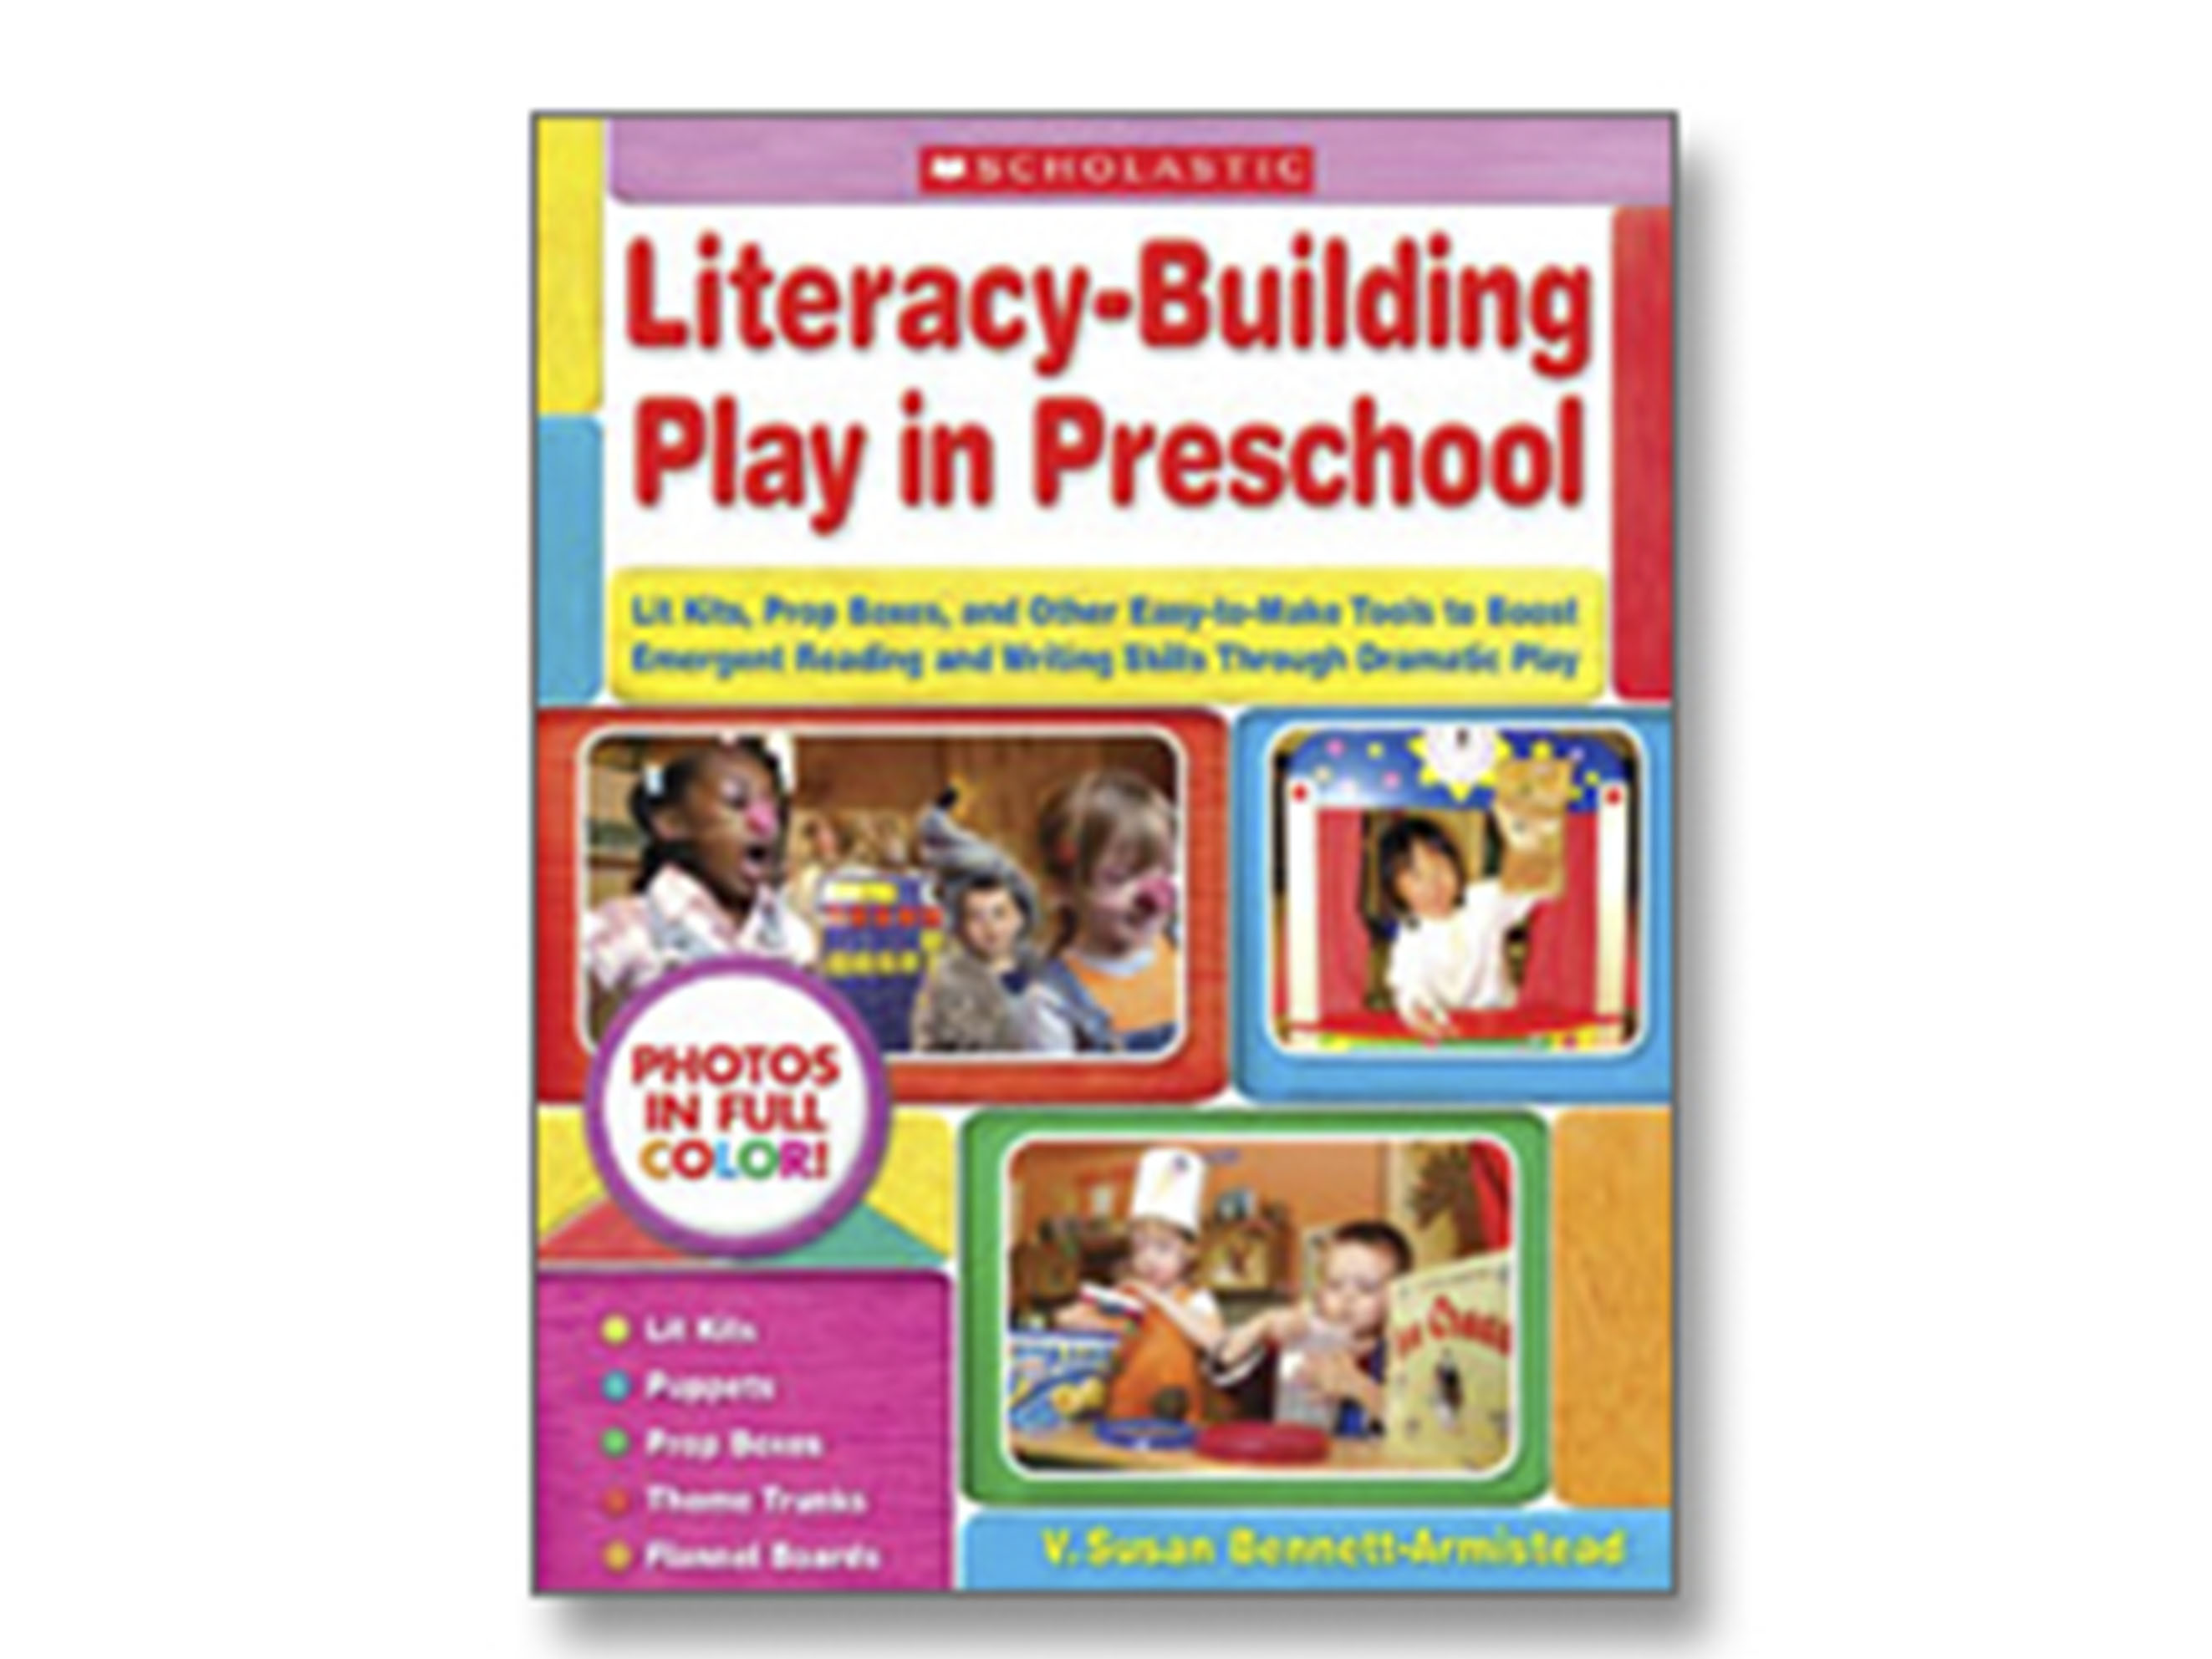 What Is Dramatic Play and How Does It Support Literacy Development in Preschool?